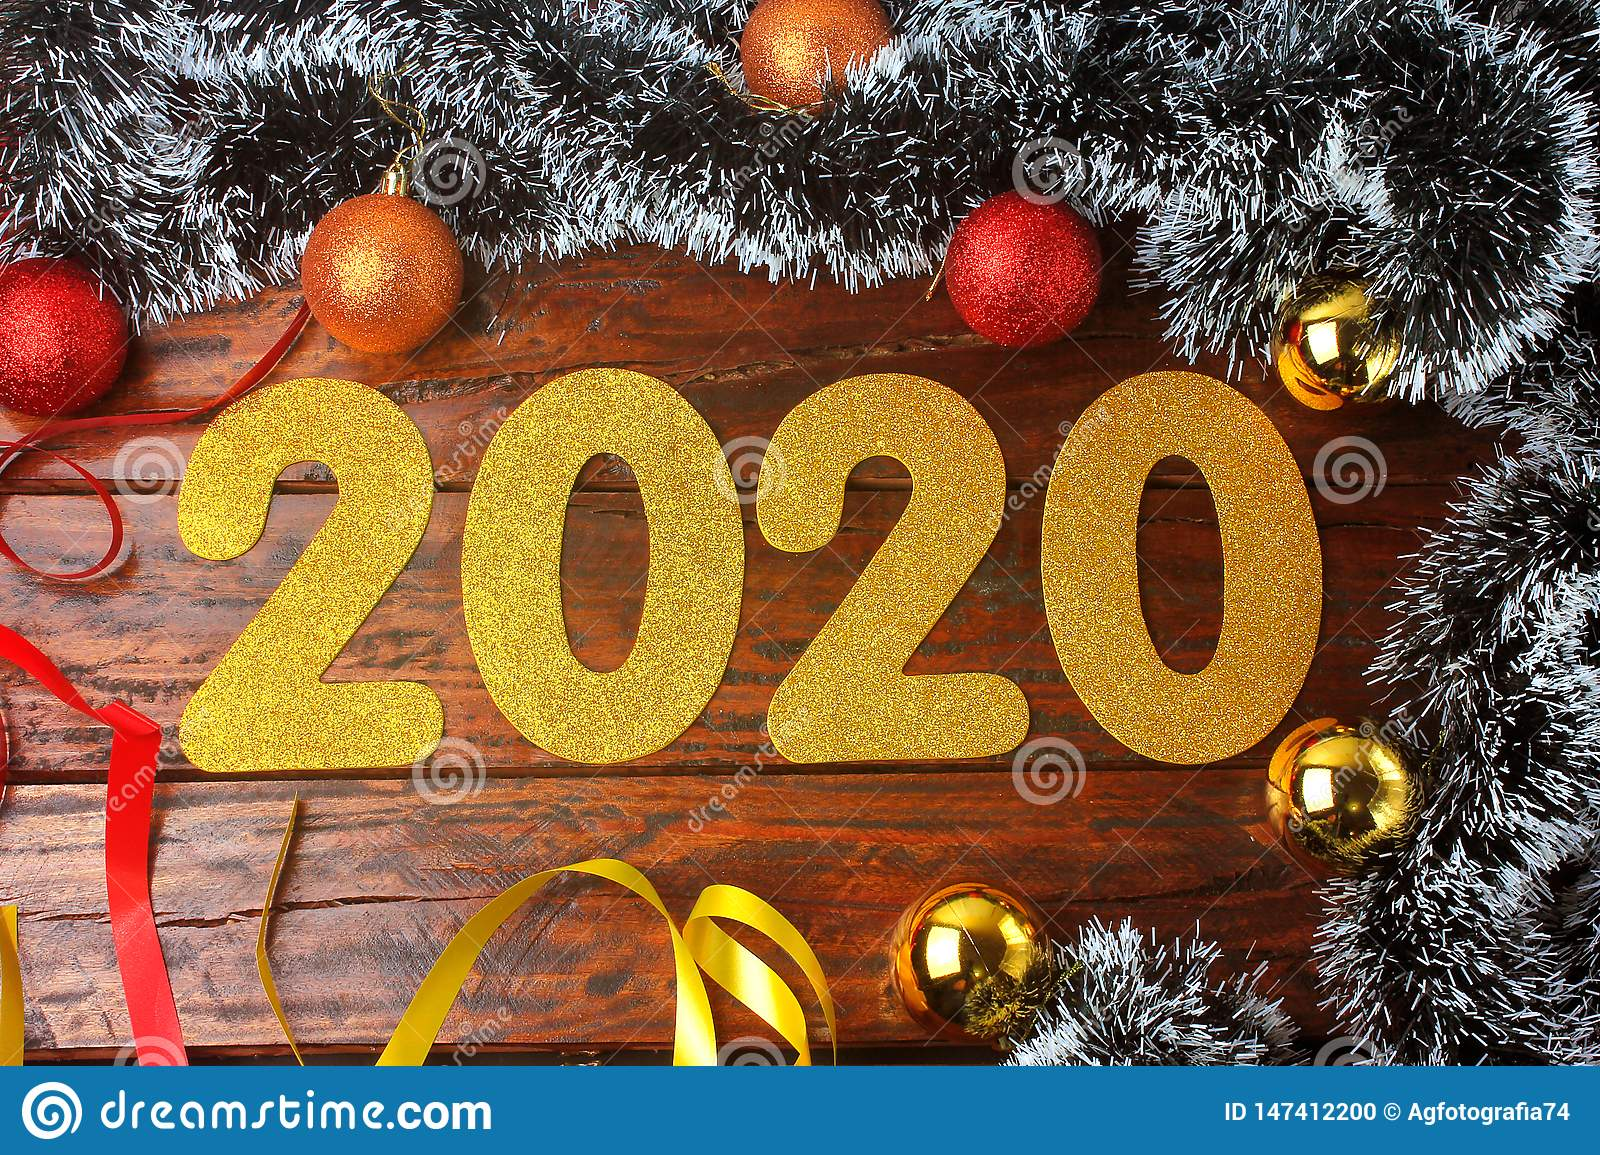 2020 new year, golden numbers on ornate rustic wooden table in festive celebration